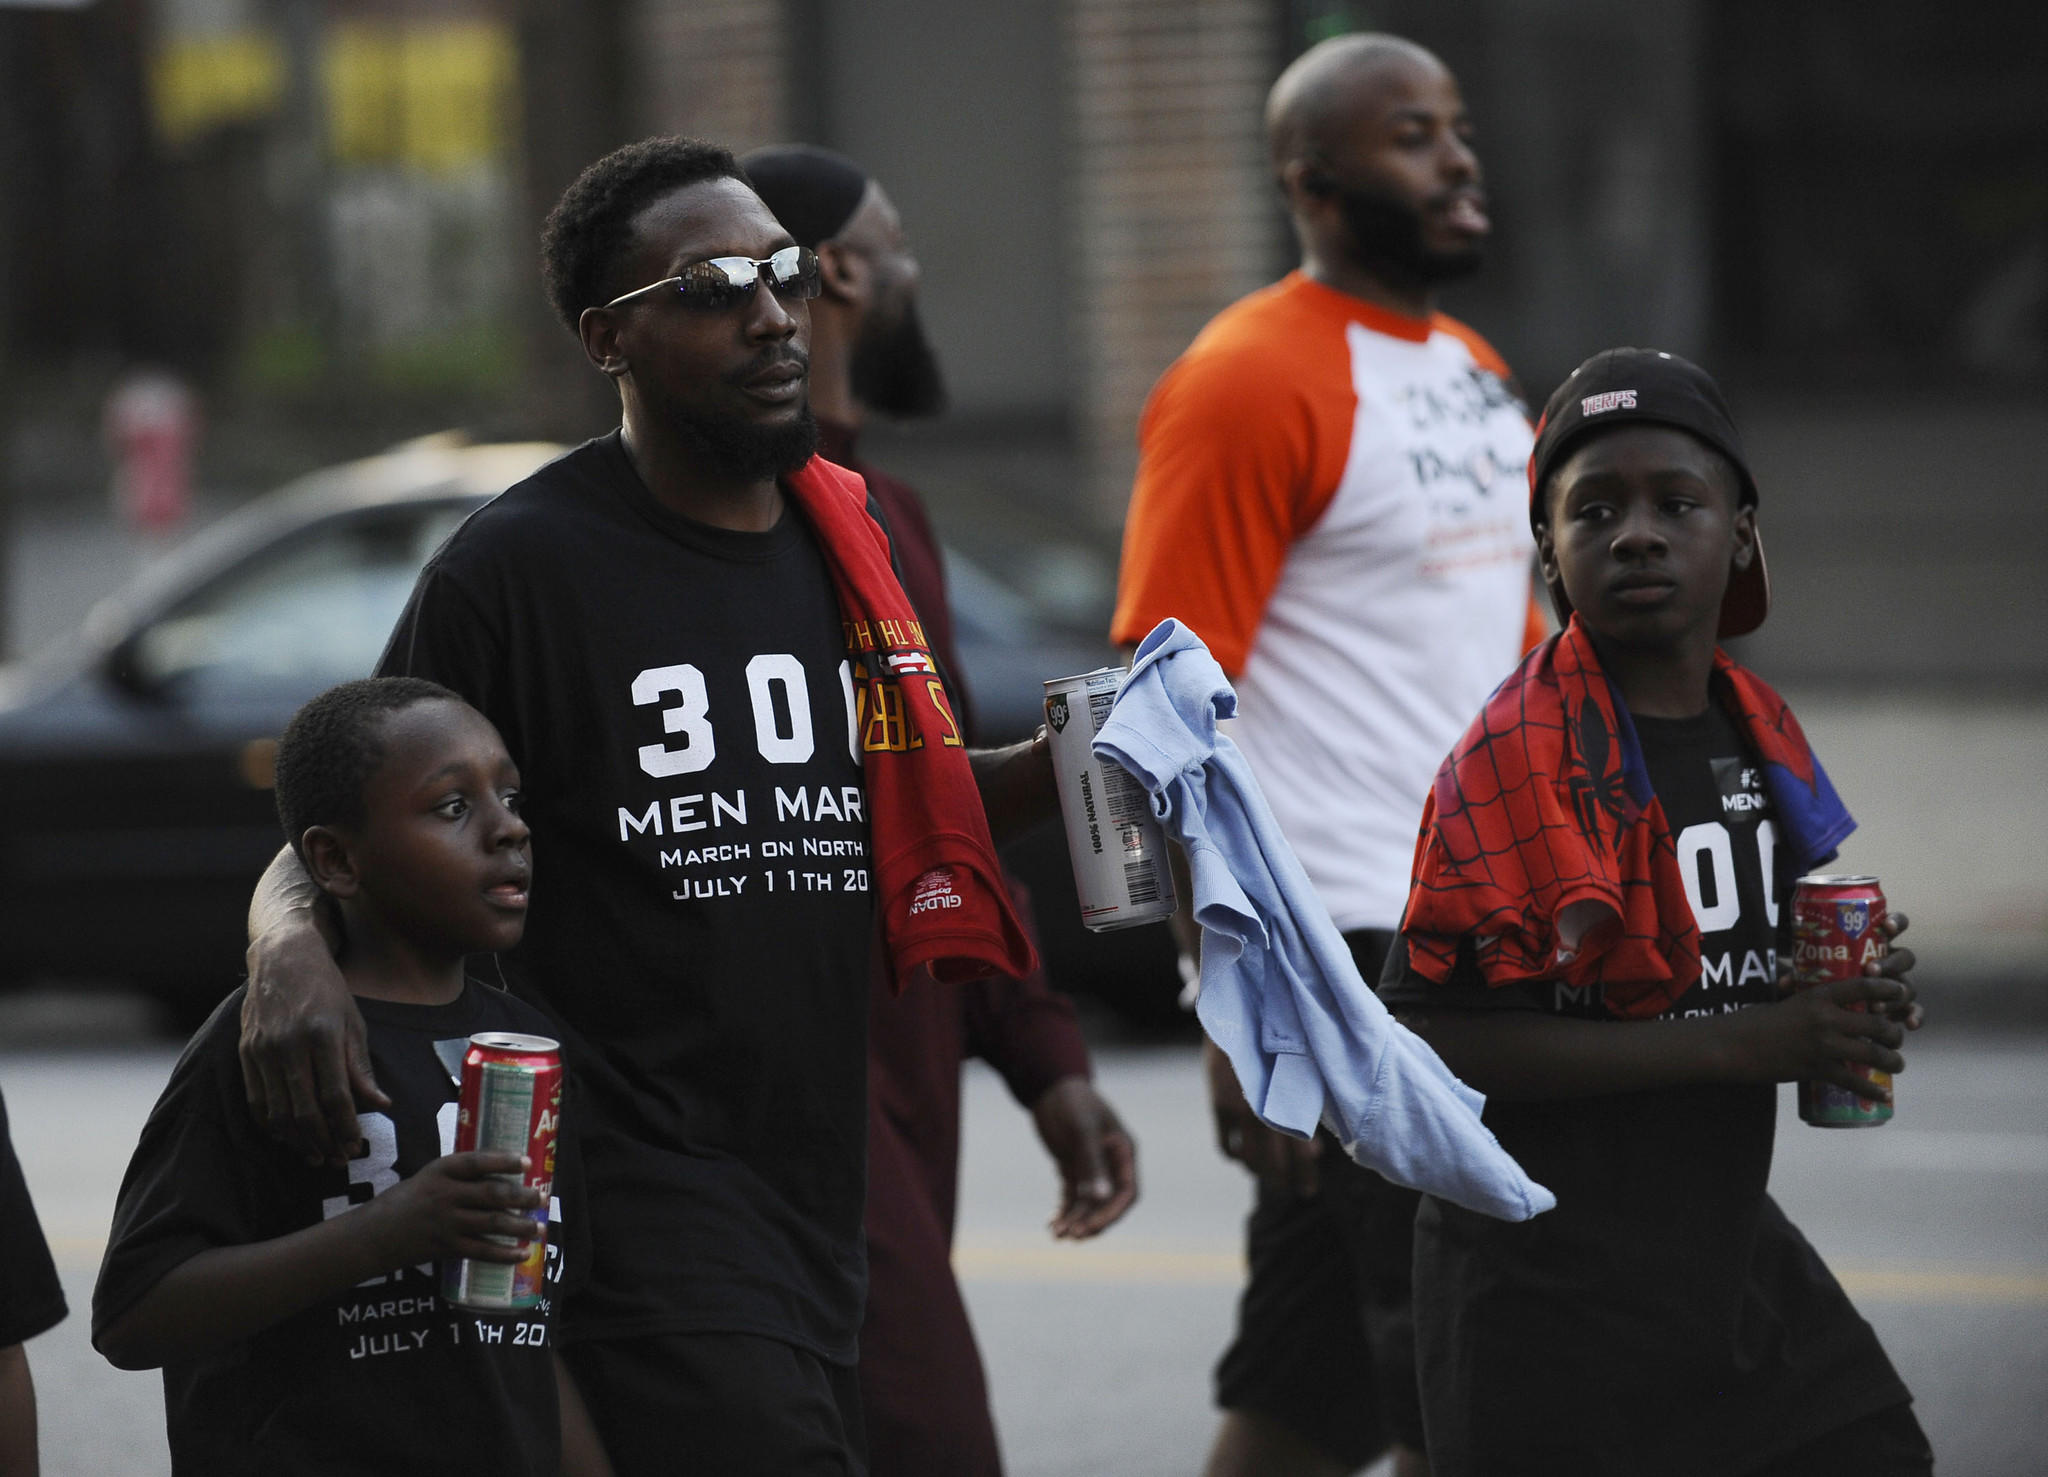 From left, Zachary Gaines IV, 8, marches with his father, Zachary Gaines and brother Isaiah, 10, all of Baltimore, during the 300 Men March.